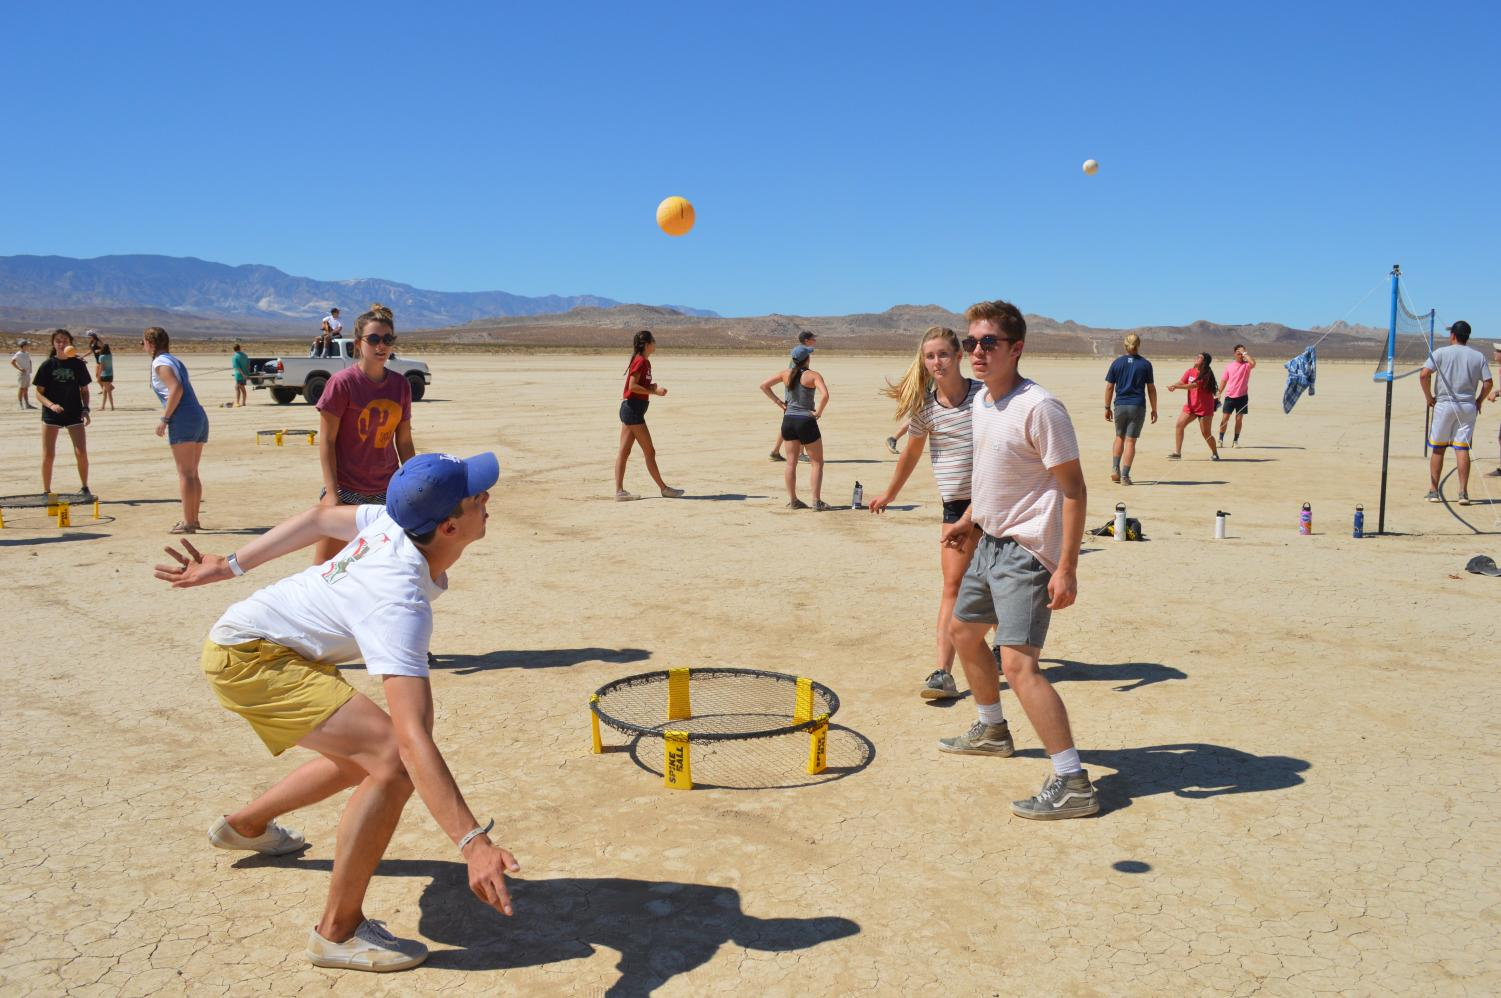 Biola students enjoy activities such as spikeball during the Johnson Valley camping trip.